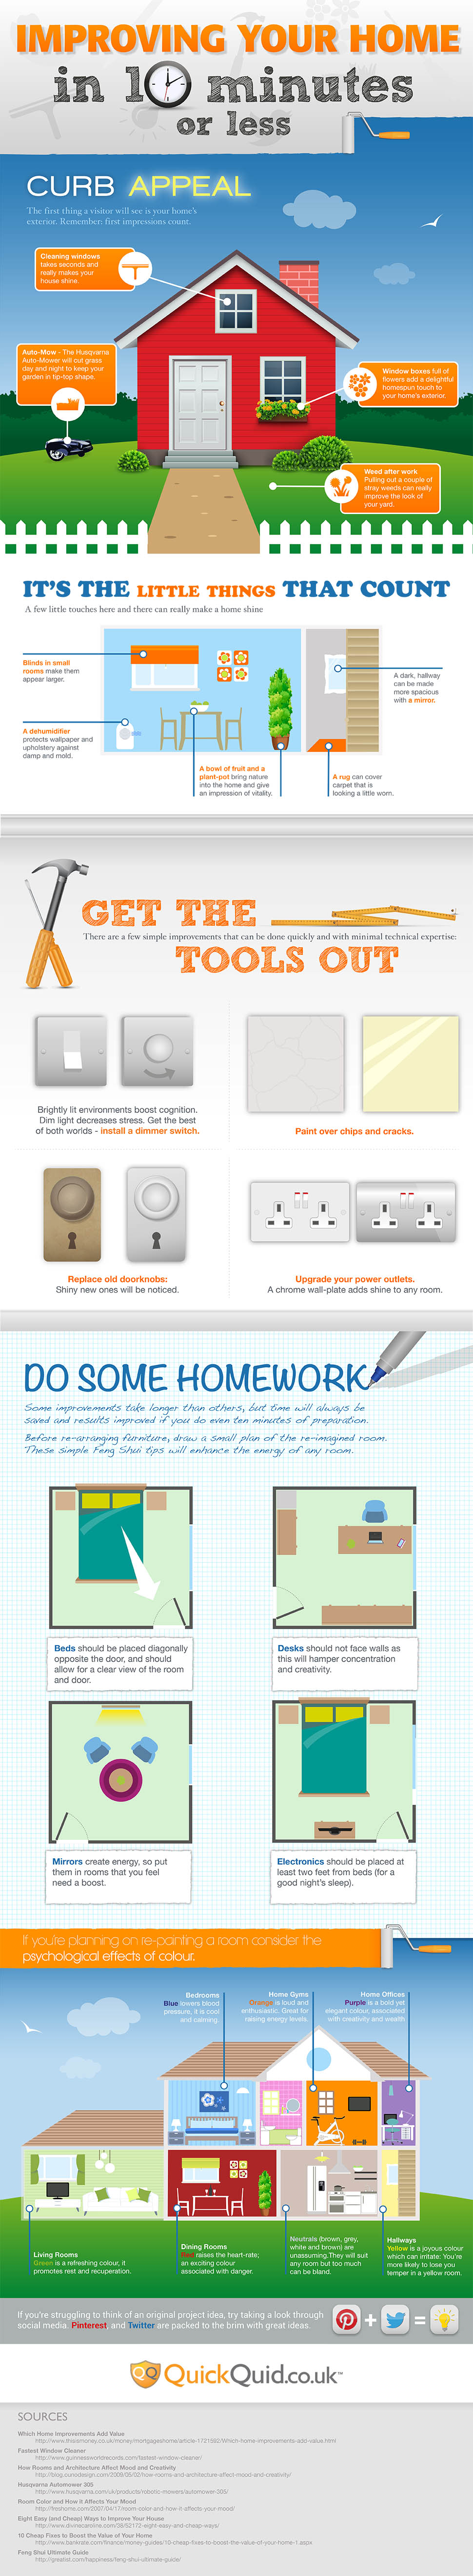 Home Improvement In 10 Minutes Or Less - Infographic